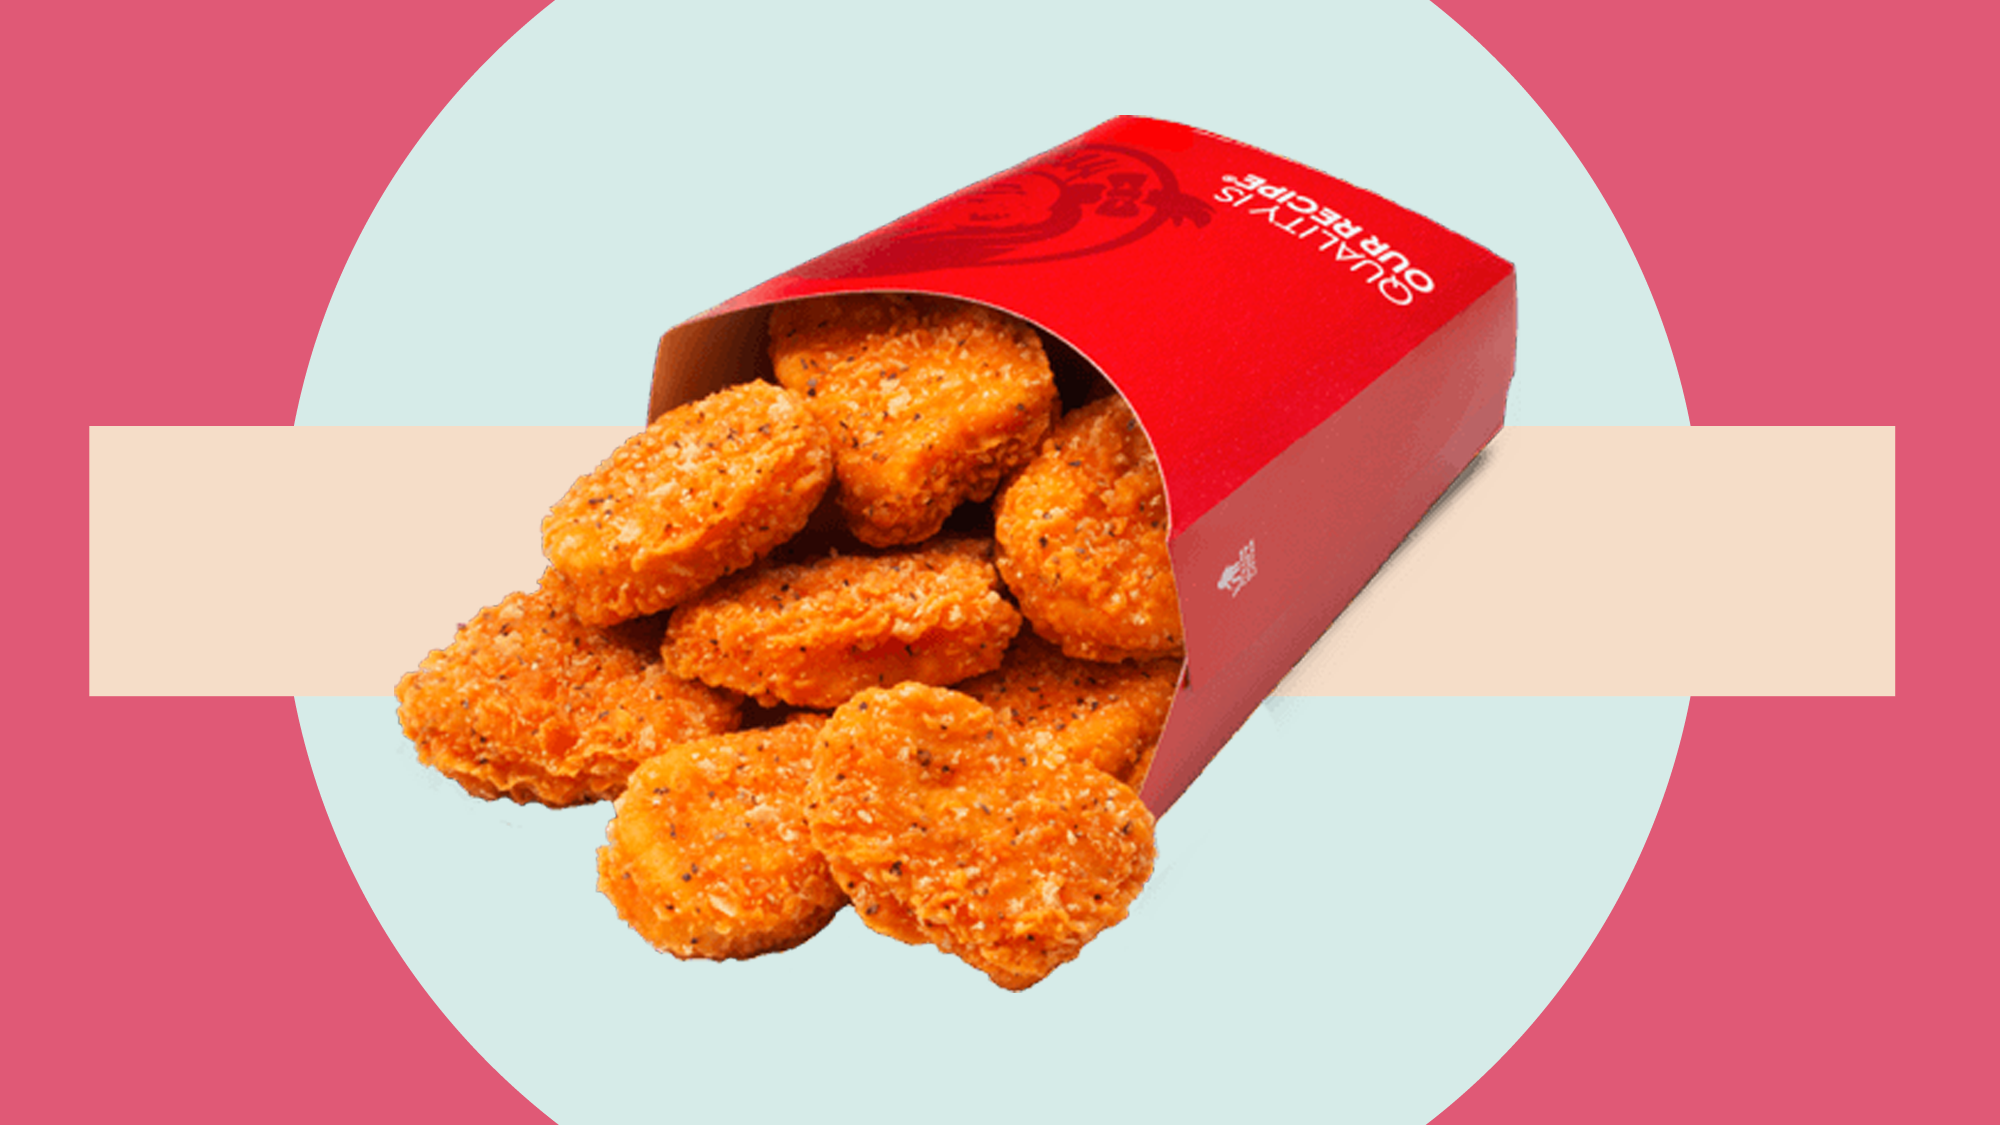 Wendys Got Rid of Its Spicy Chicken Nuggets and the Internet Is Pissed